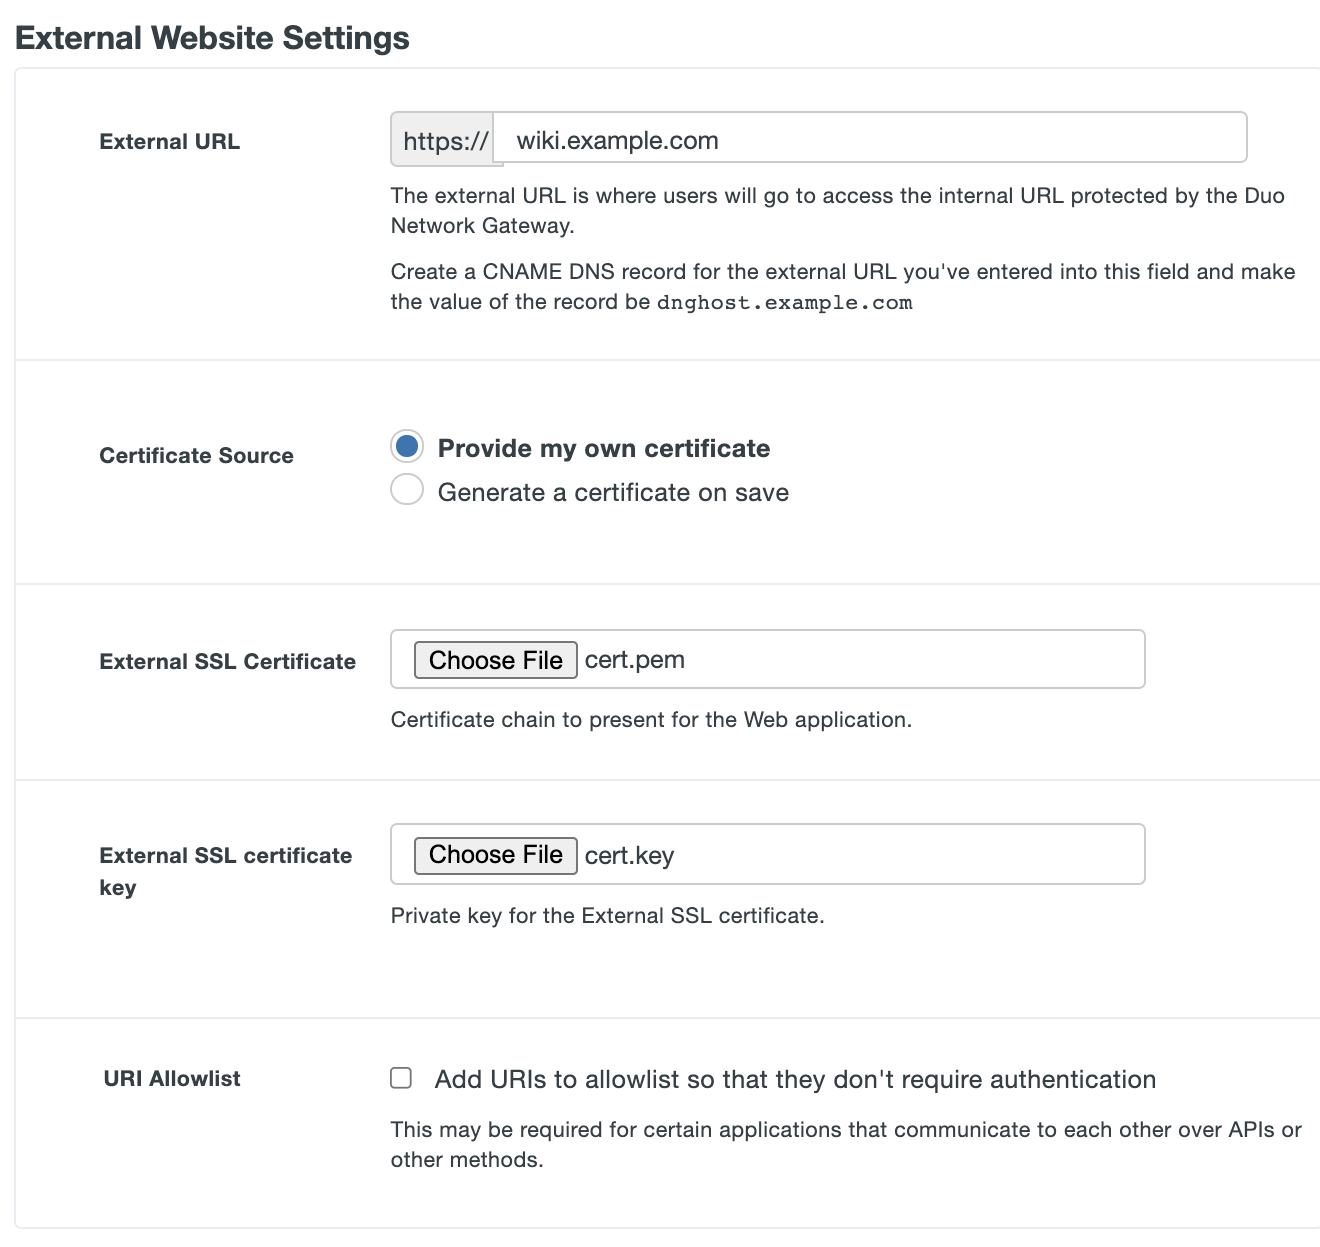 Configure external settings for Duo Network Gateway Application